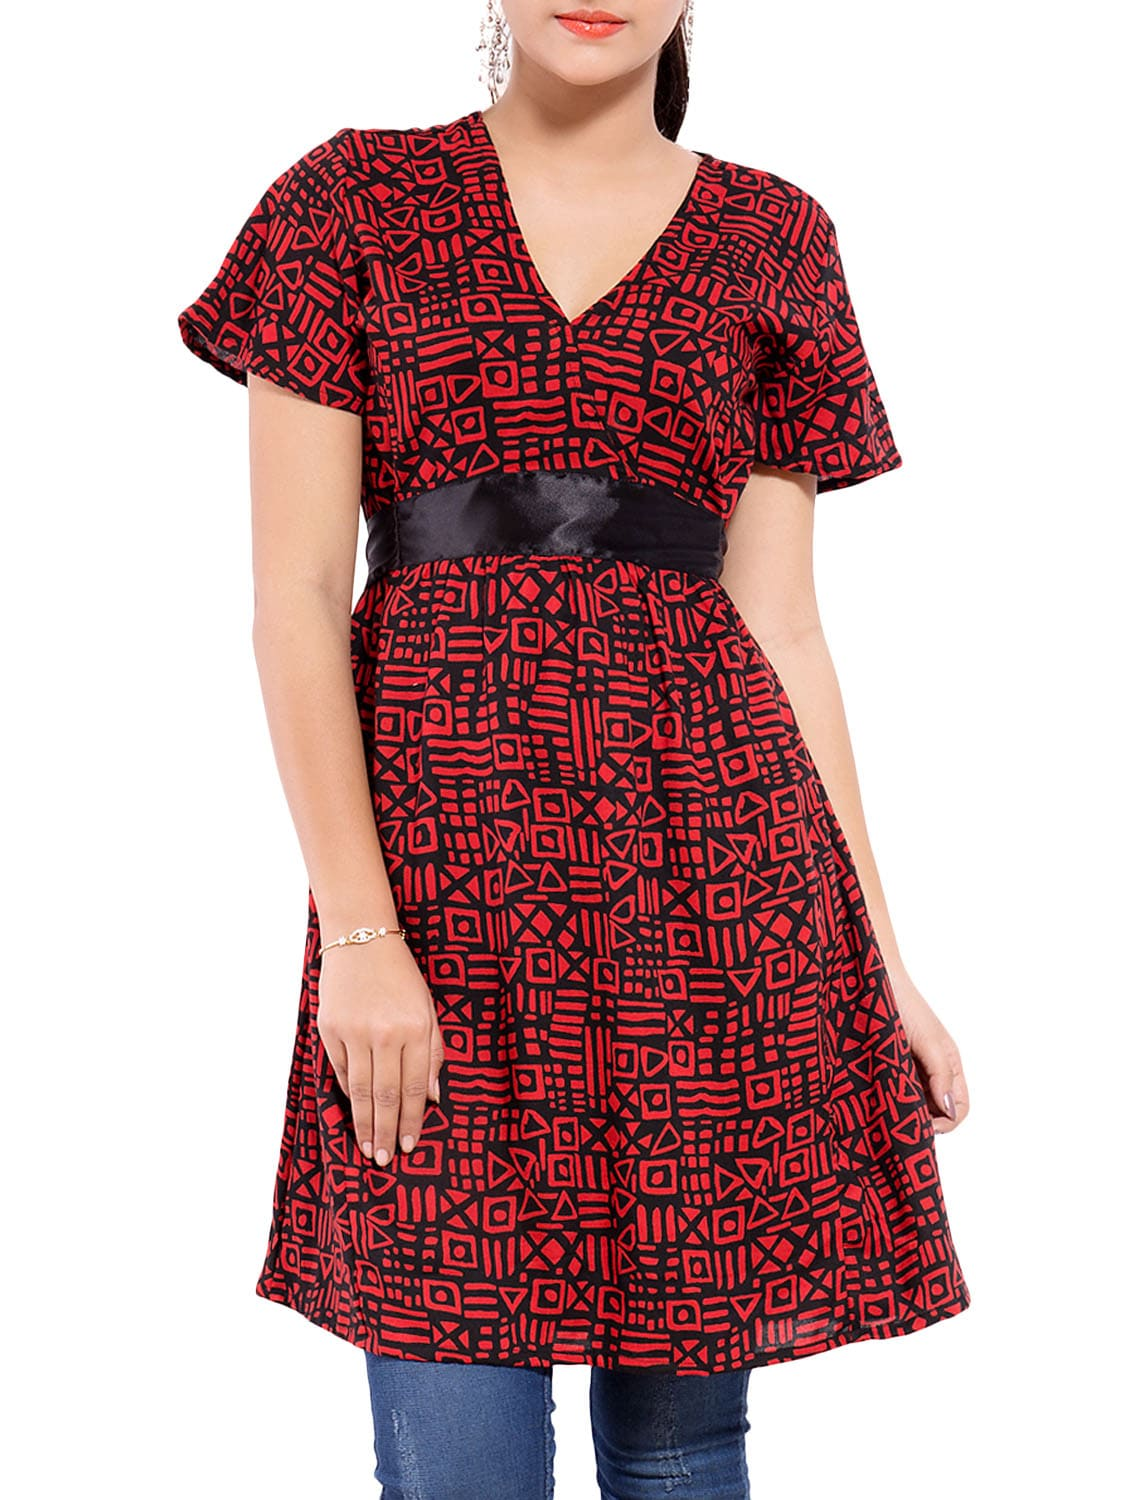 c5334a33c77 Buy Red Rayon Printed A-line Tunic for Women from Goodwill for ₹519 ...